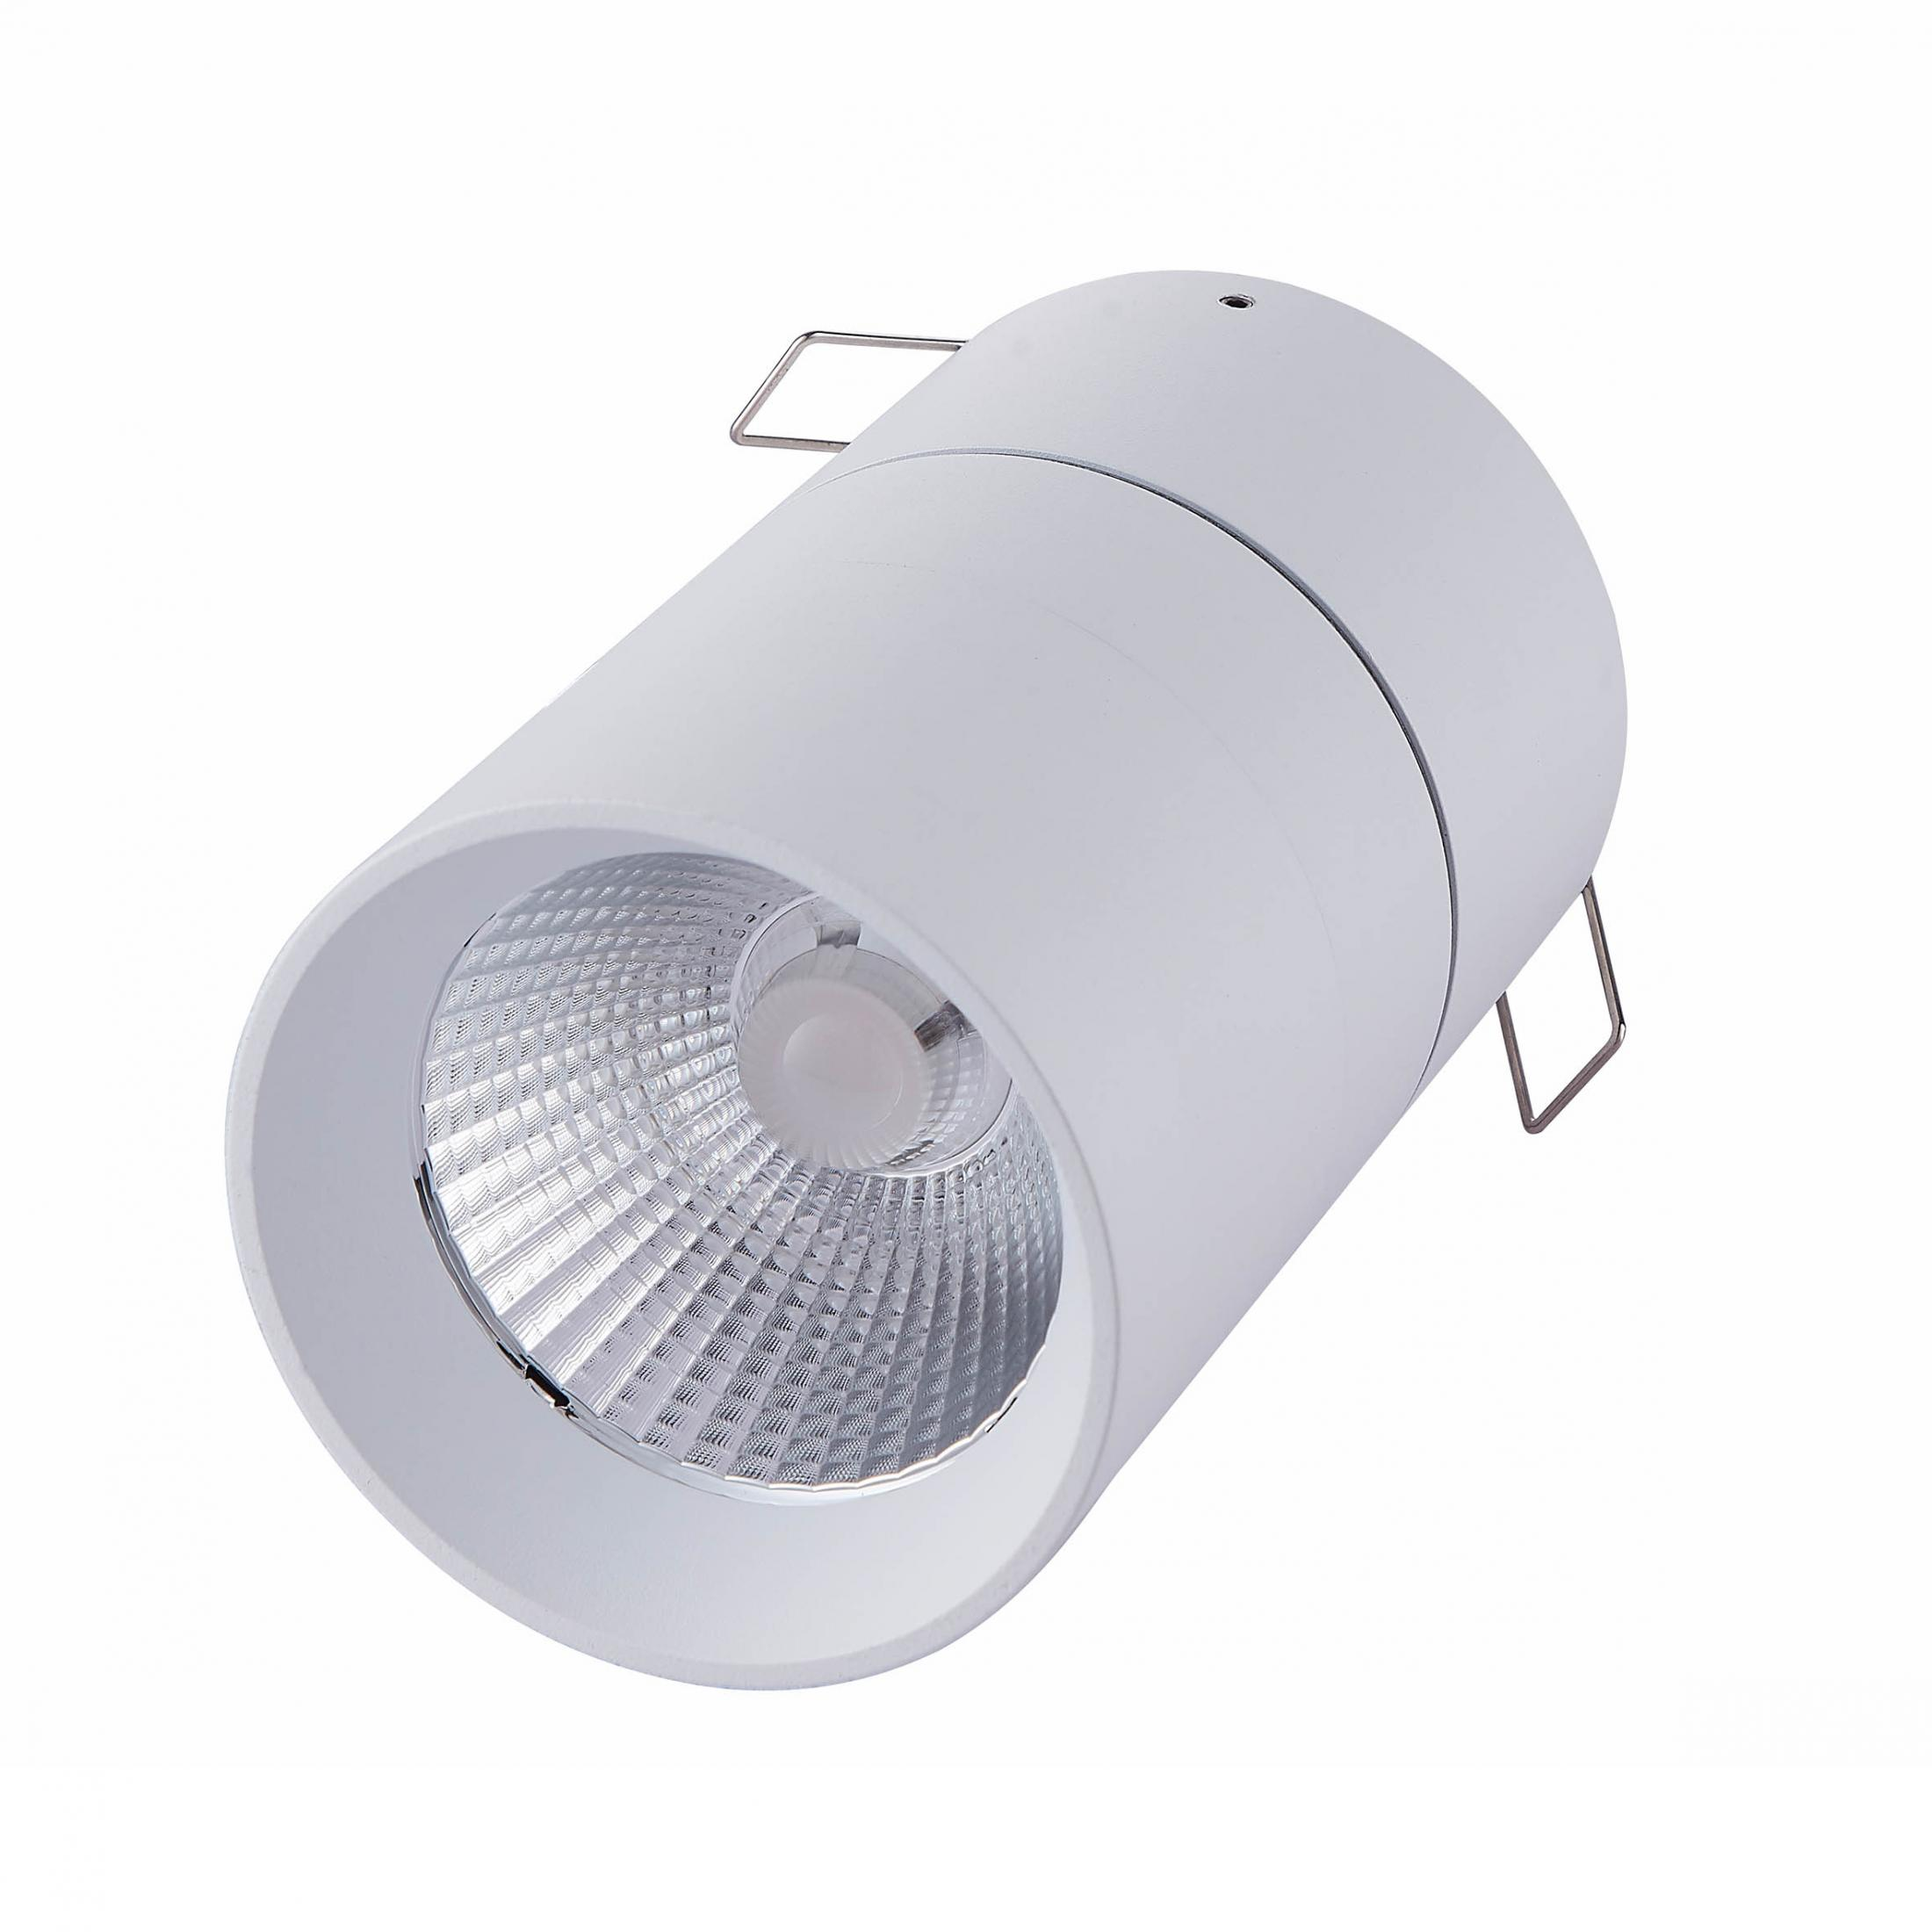 AC220-240V Cylinder Interior Ceiling Recessed 10W LED Light